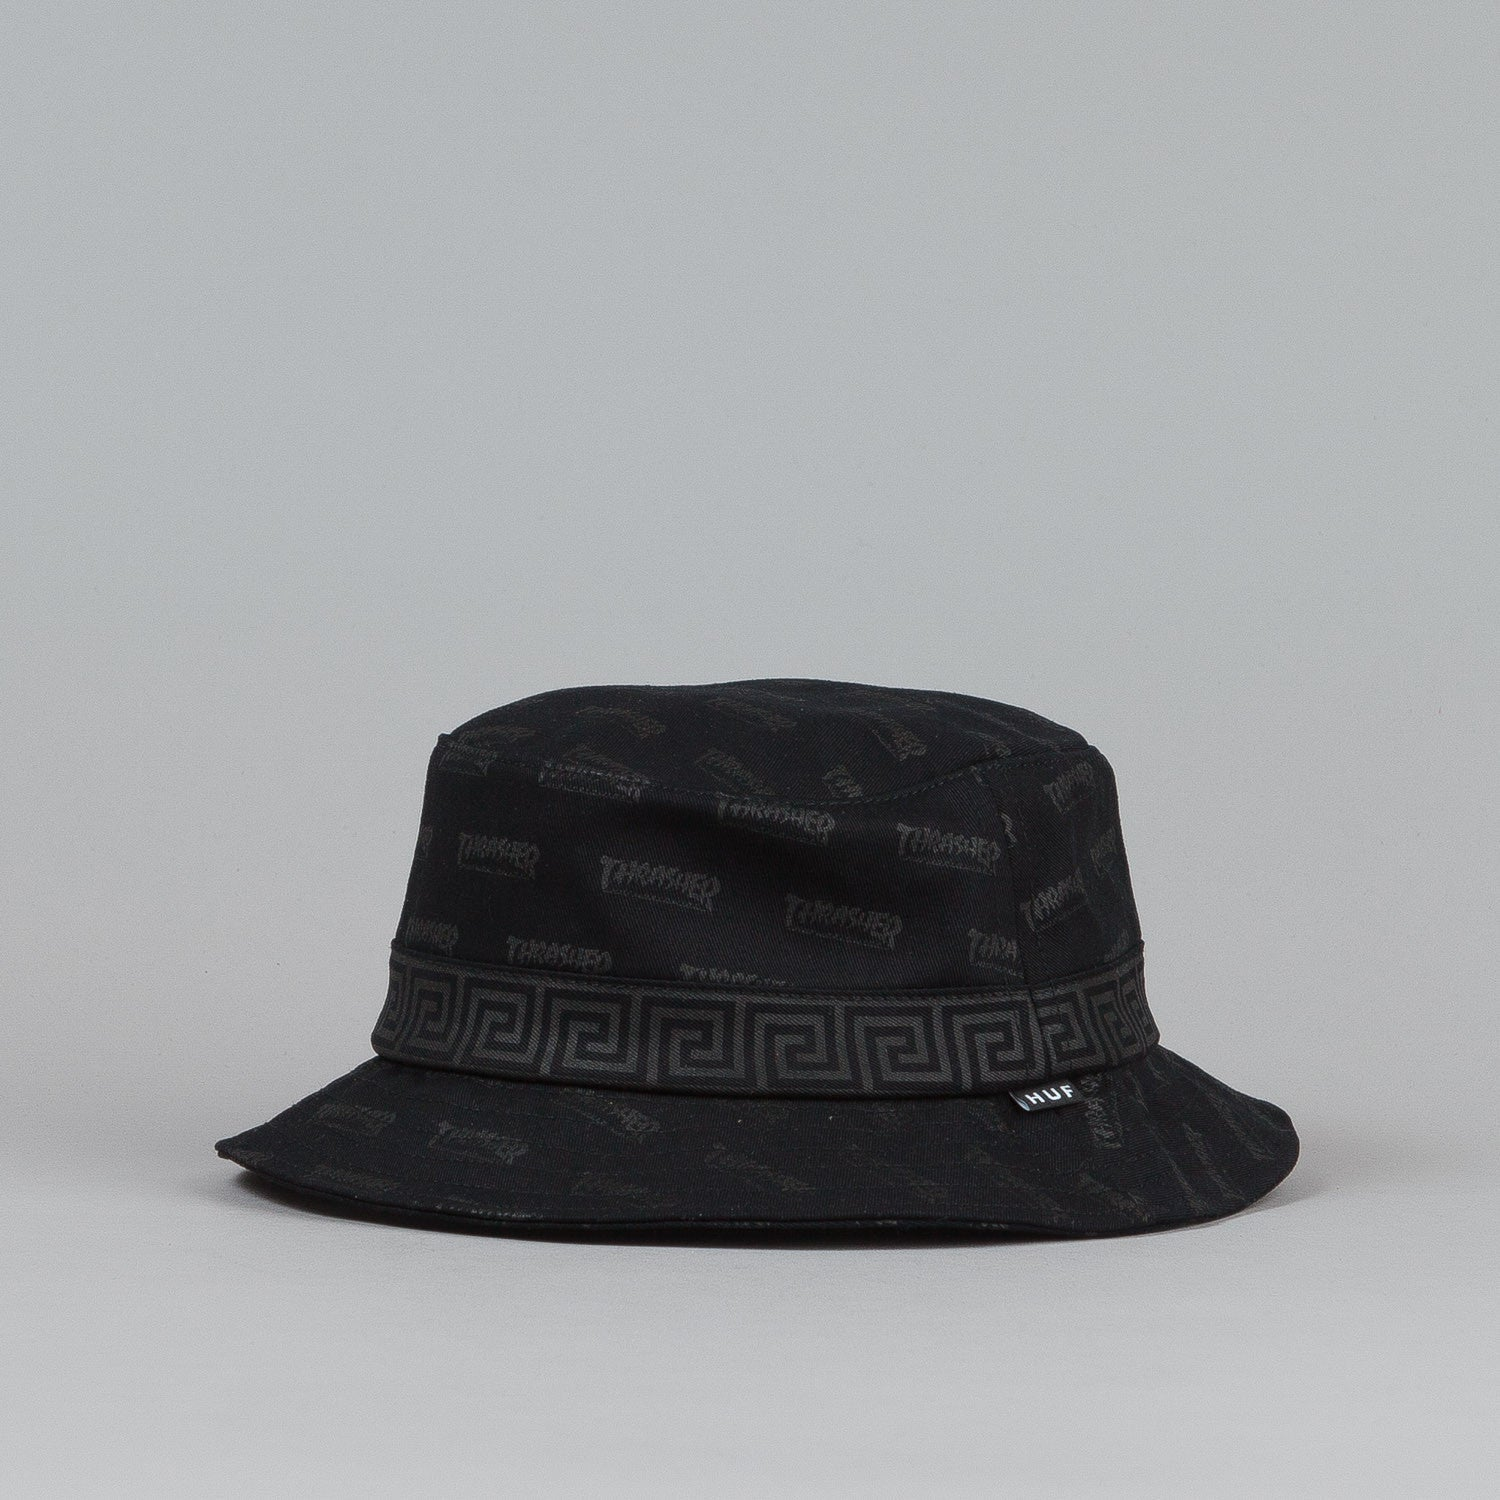 Huf X Thrasher Bucket Hat Black